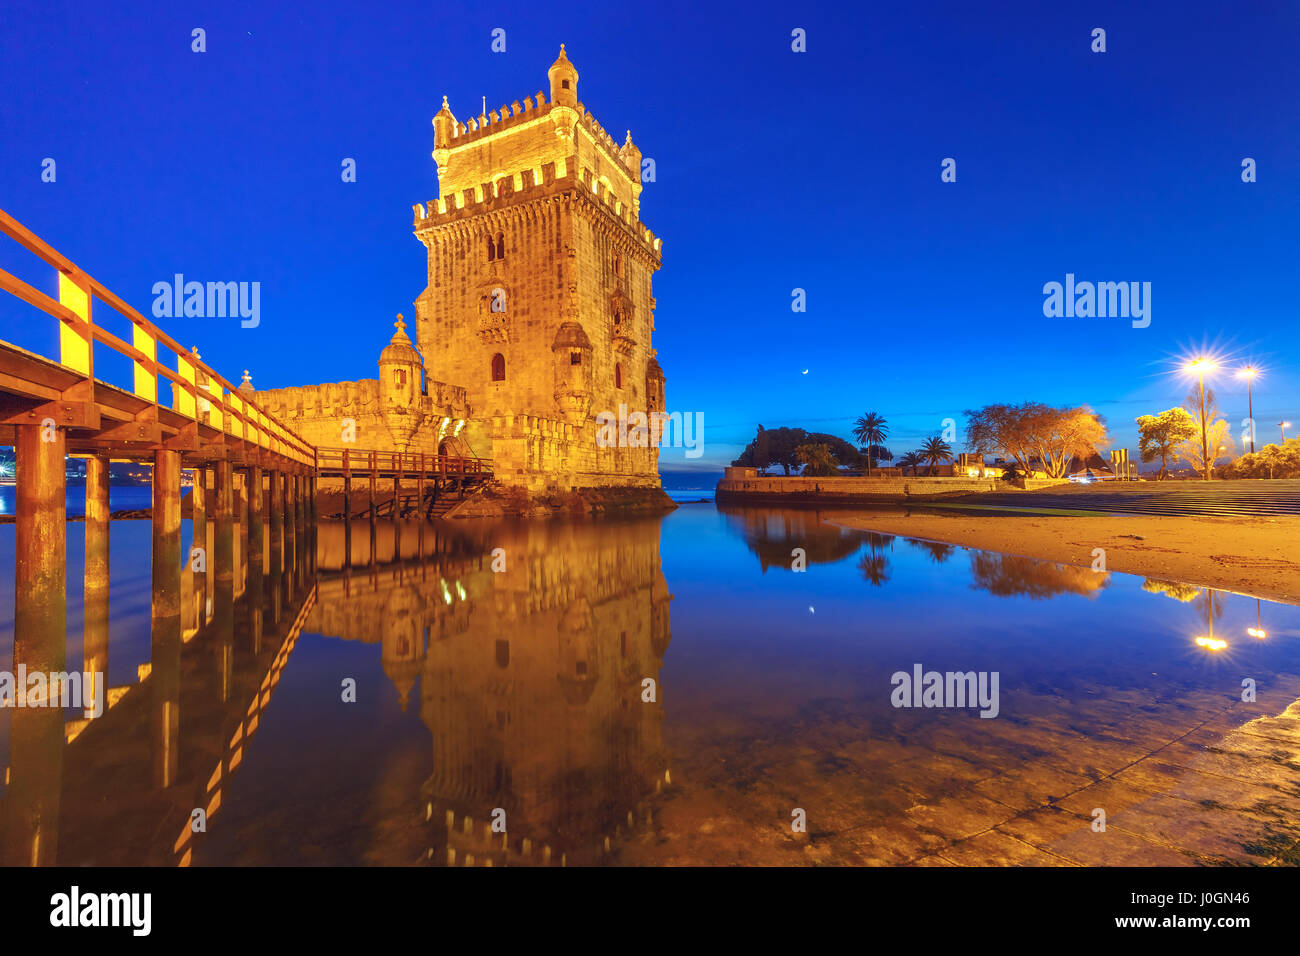 Belem Tower or Tower of St Vincent on the bank of the Tagus River during evening blue hour, Lisbon, Portugal - Stock Image